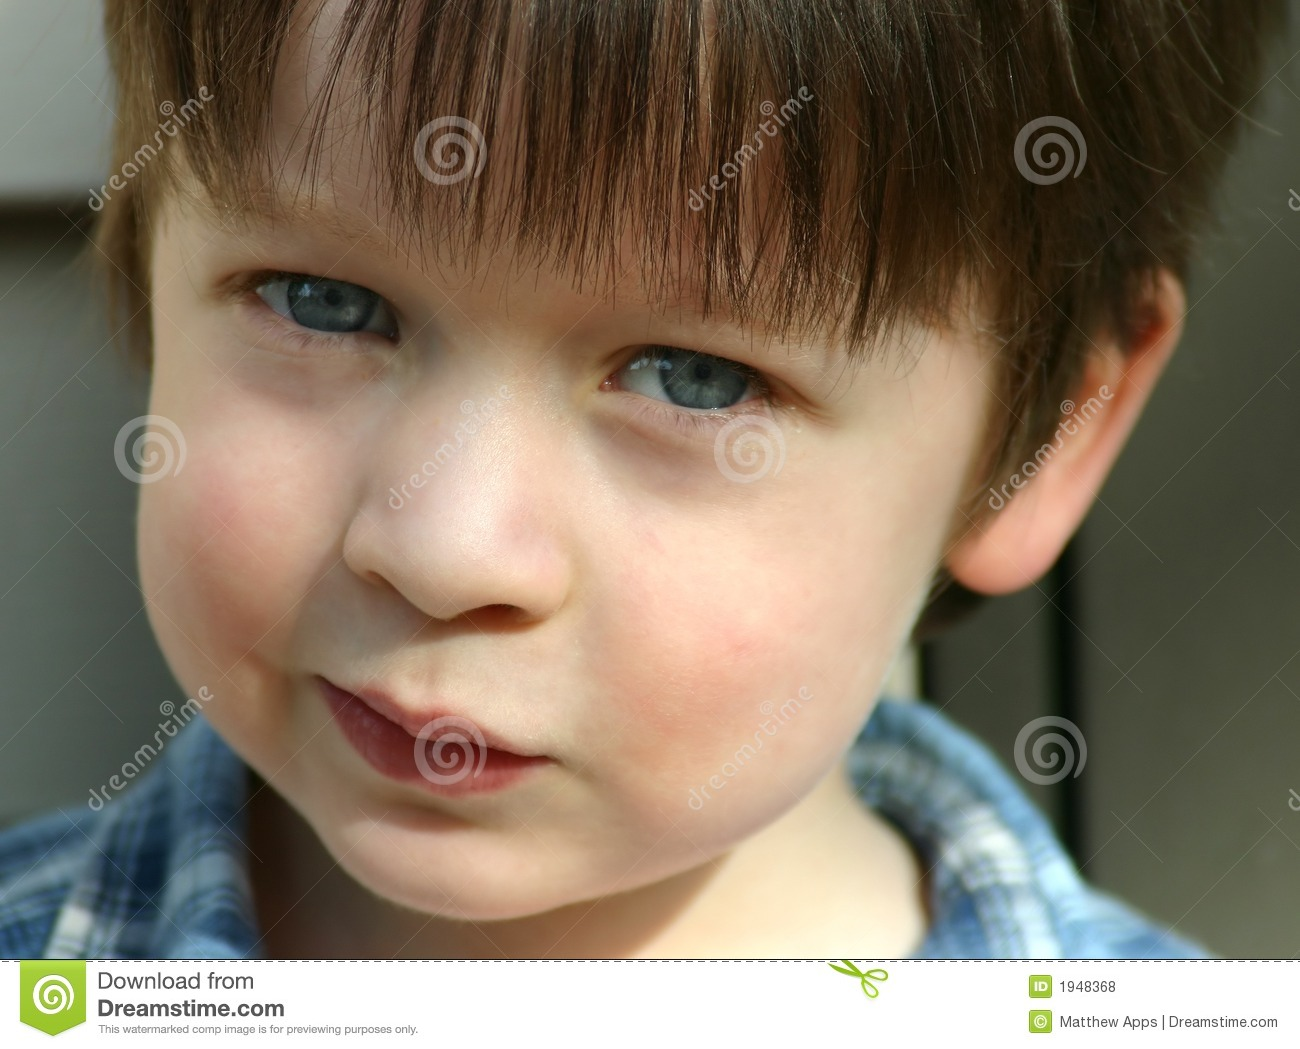 funny child little boy with blue eyes close up portrait of kid